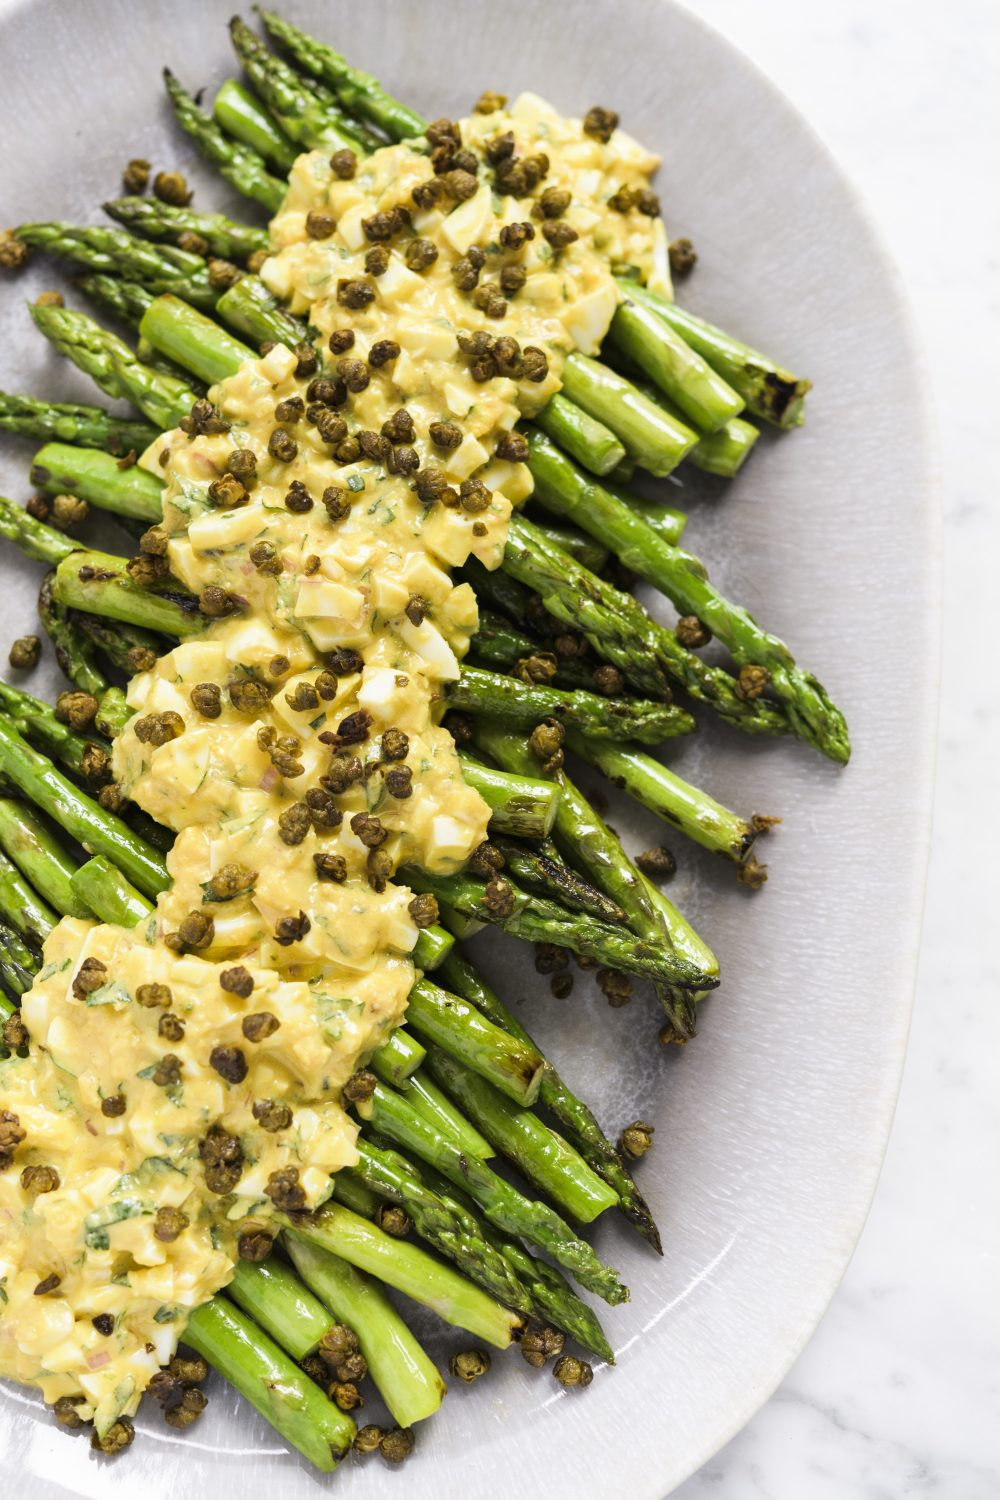 Asparagus with Sauce Gribiche and Fried Capers